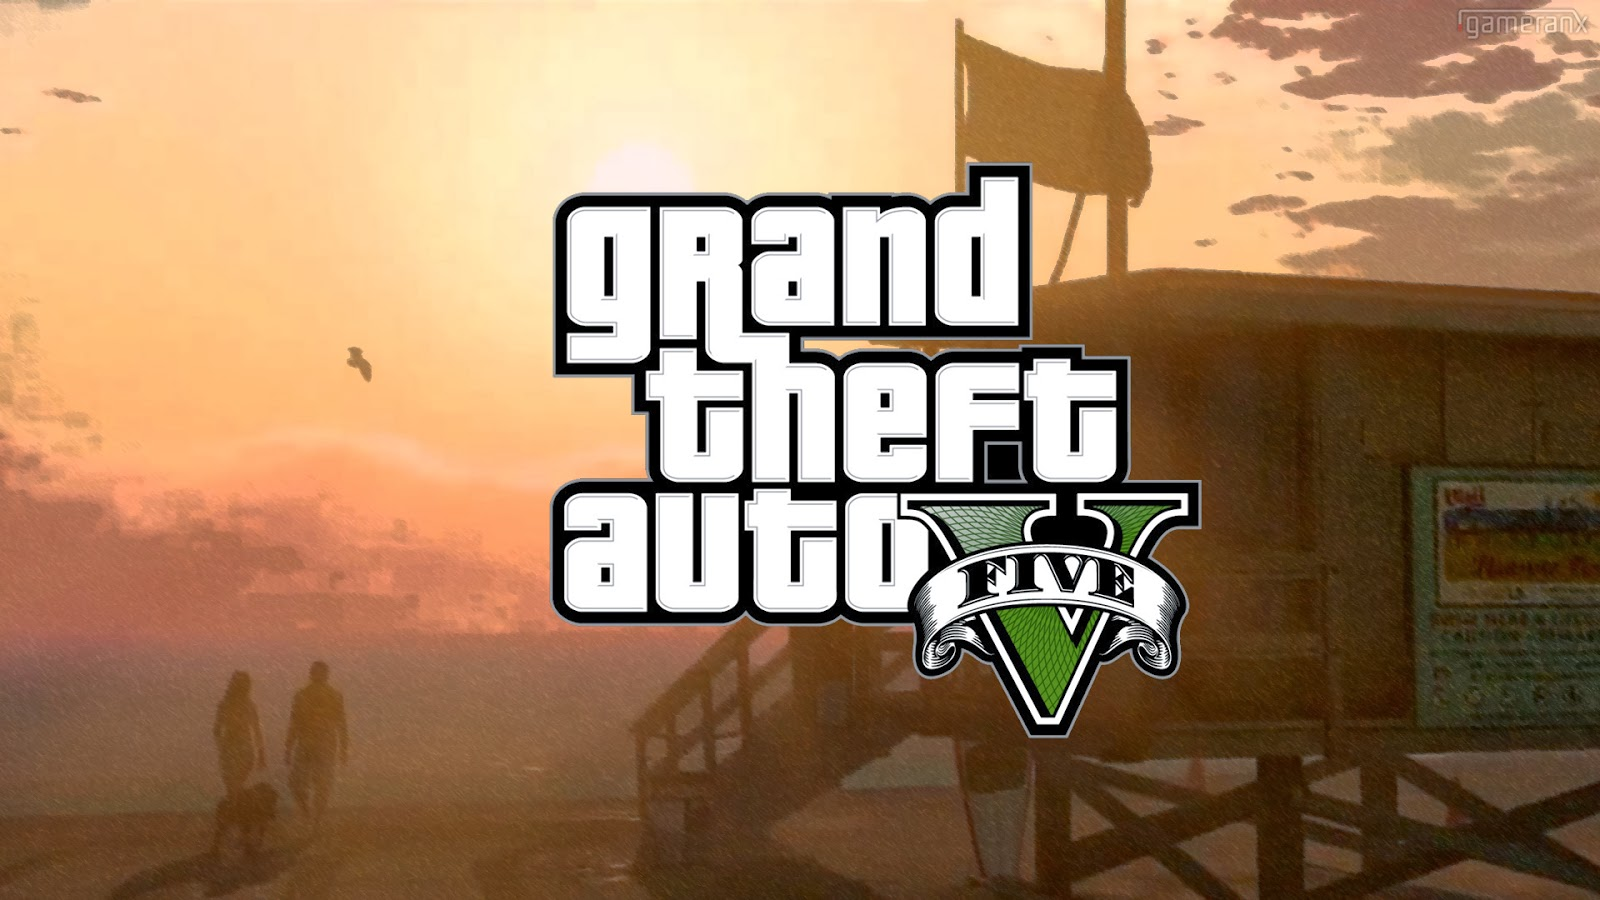 grand theft auto v hd 1080p wallpapers | grand theft auto 5 guide blog